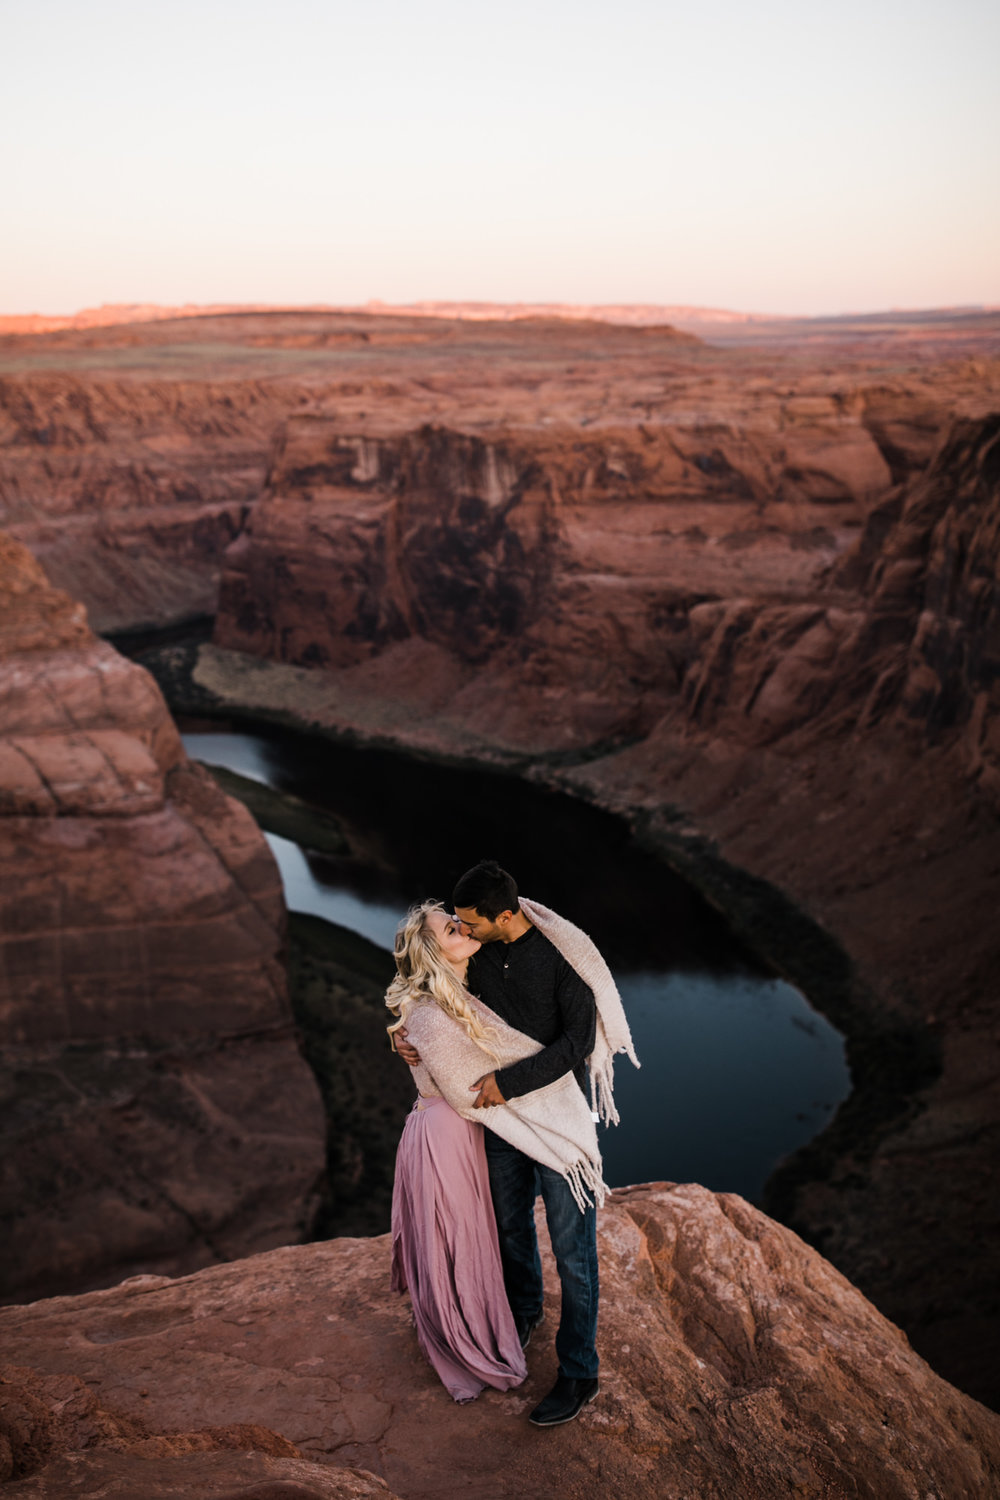 adventure elopement session at horseshoe bend | destination engagement photo inspiration | utah adventure elopement photographers | the hearnes adventure photography | www.thehearnes.com